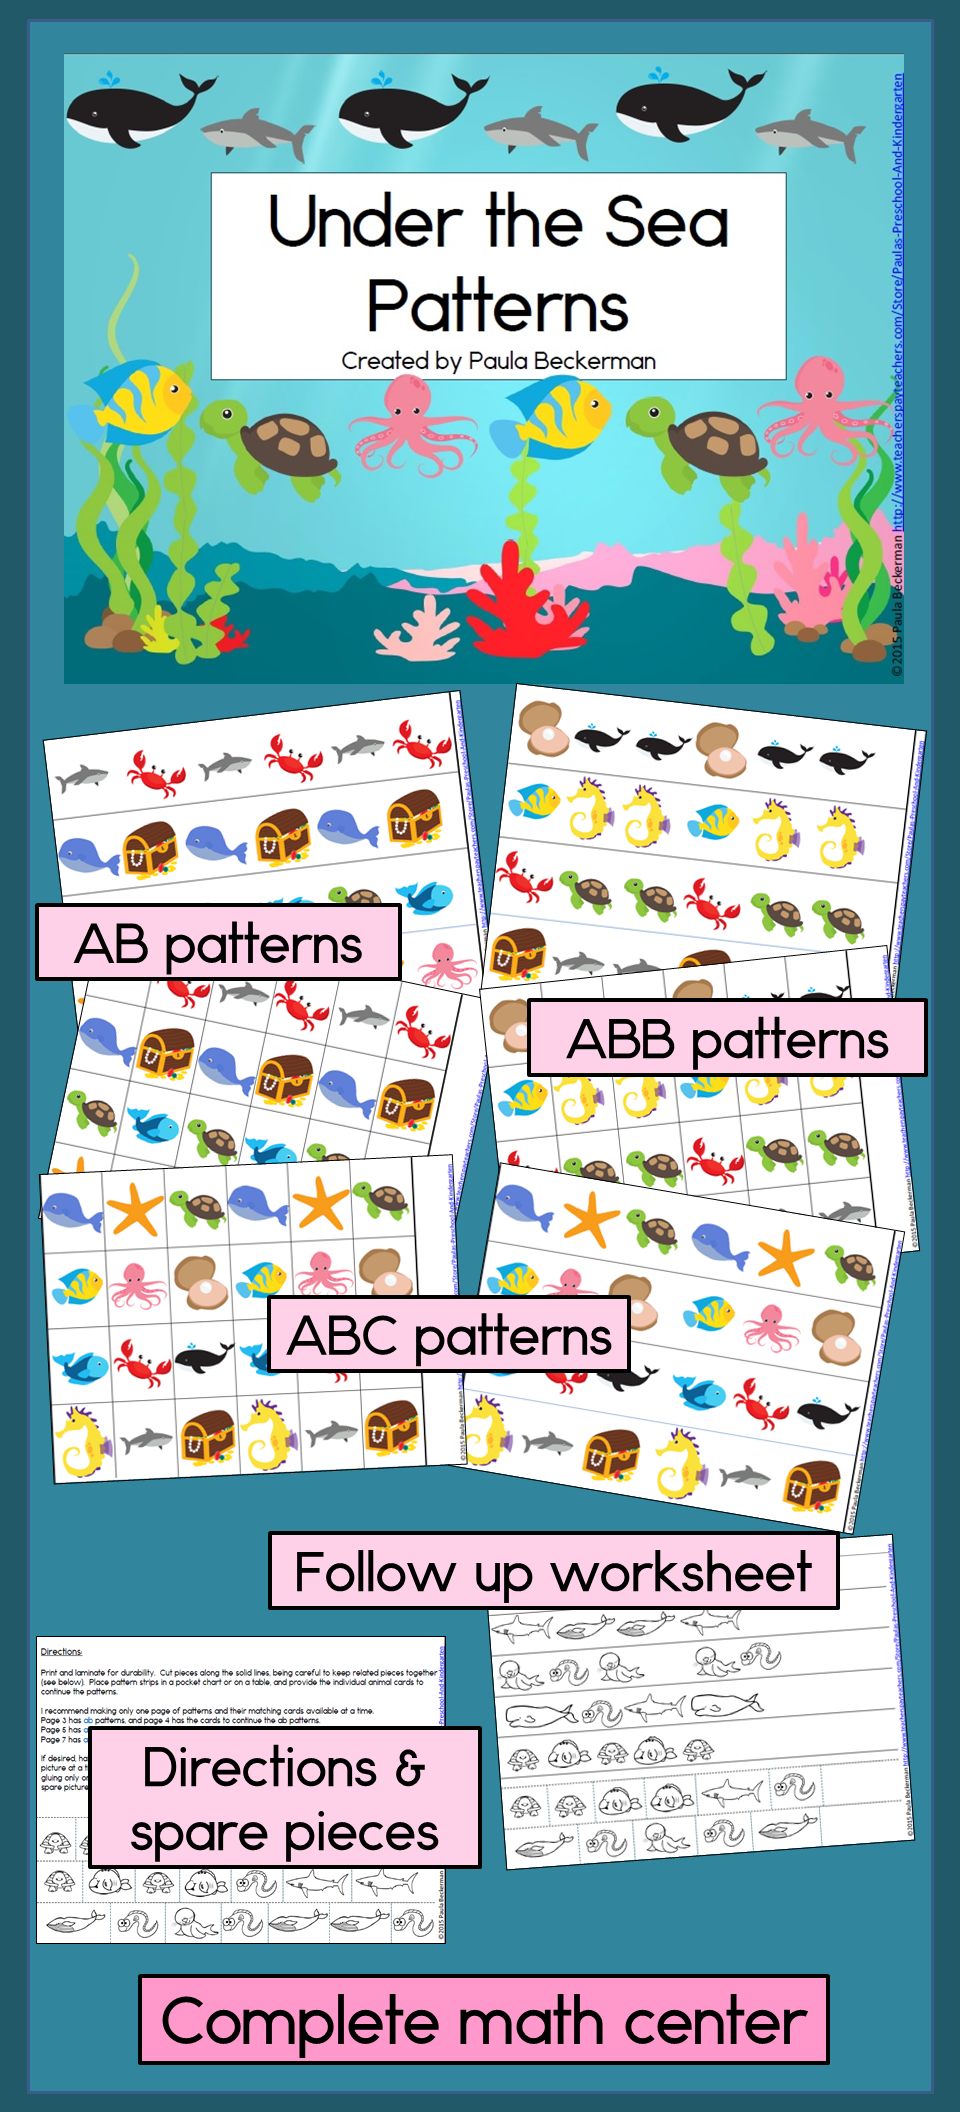 Ocean Theme Under The Sea Patterns: Math Center with AB, ABC, and ...